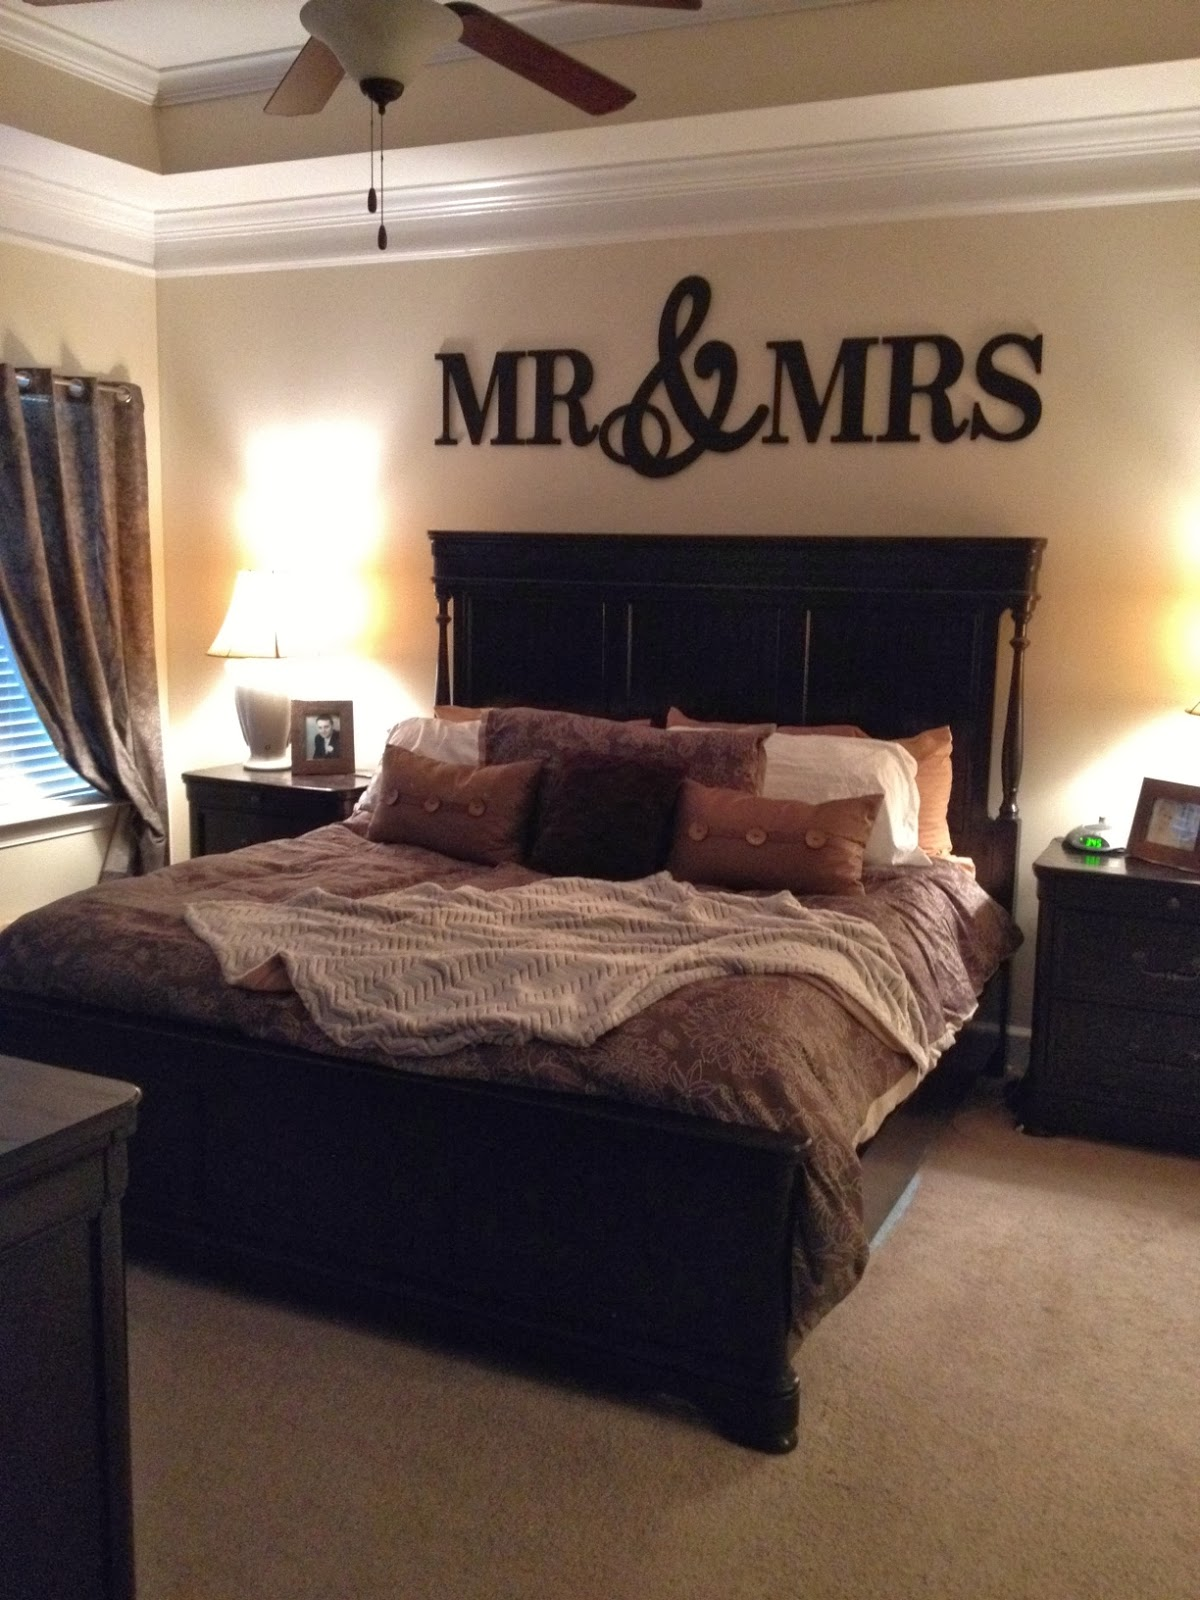 Wall Art For Master Bedroom Pinterest : Simply the simmons mr mrs